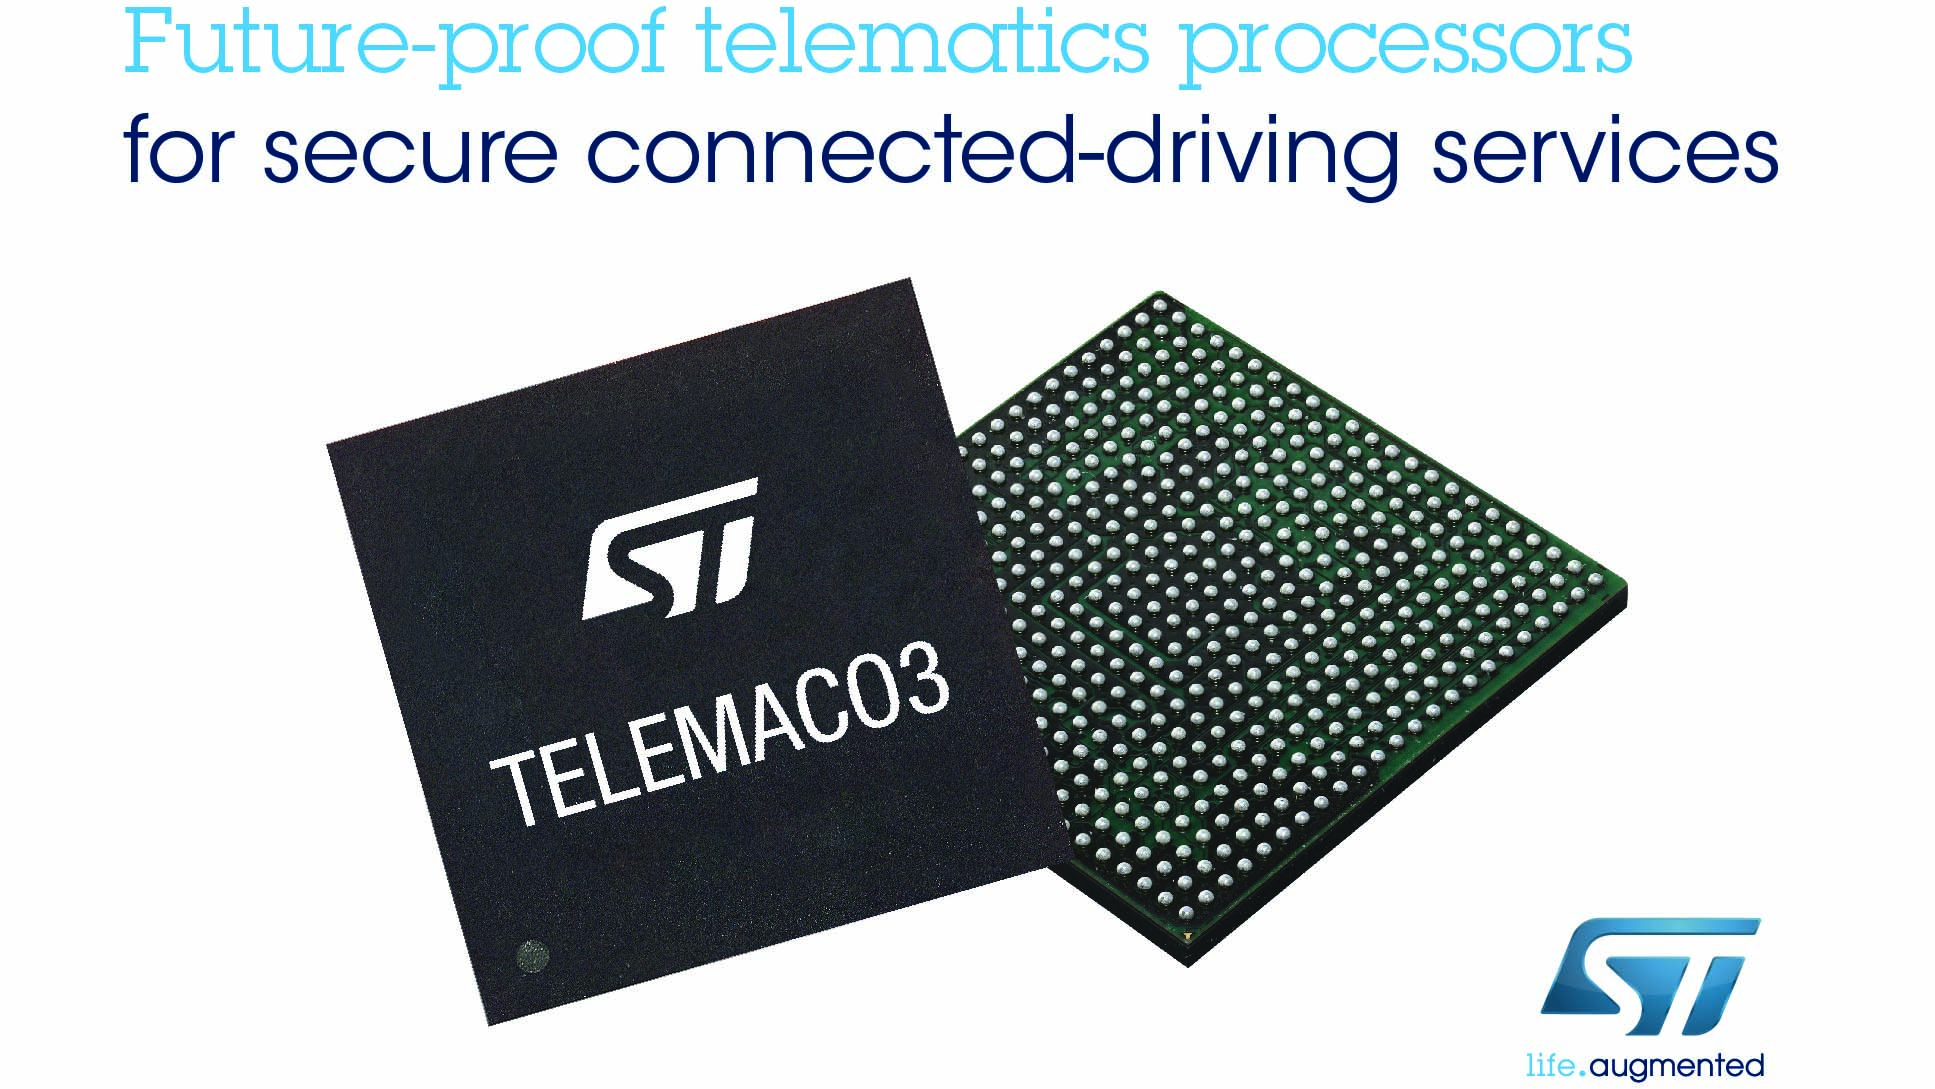 Stmicroelectronics Advances Single Chip Telematics Connectivity New Digital Power Amplifiers For Car Audio From Processors To Support Future Connected Driving Services